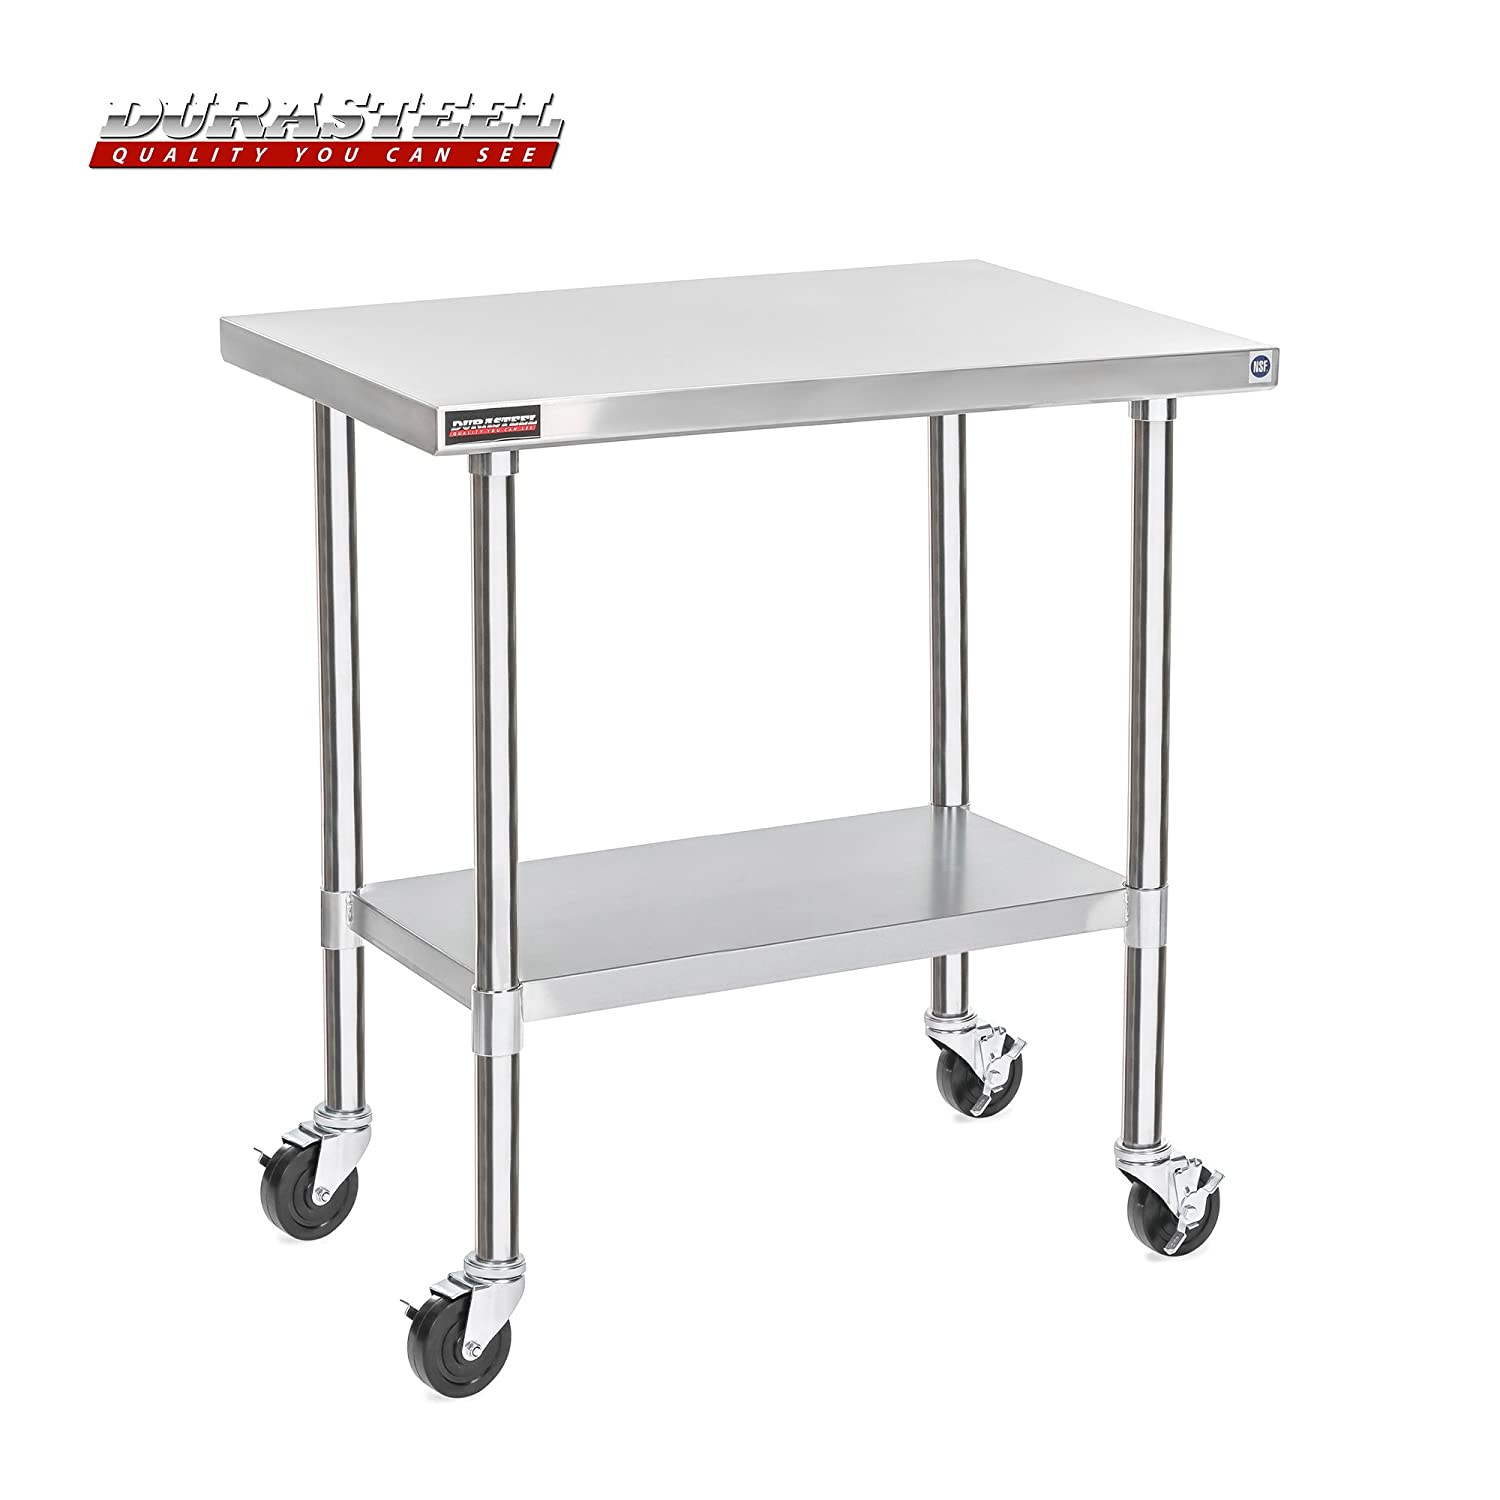 Stainless work cart - Come explore Serene Decor Slow Living as well as Small Thoughtful Changes at Home.